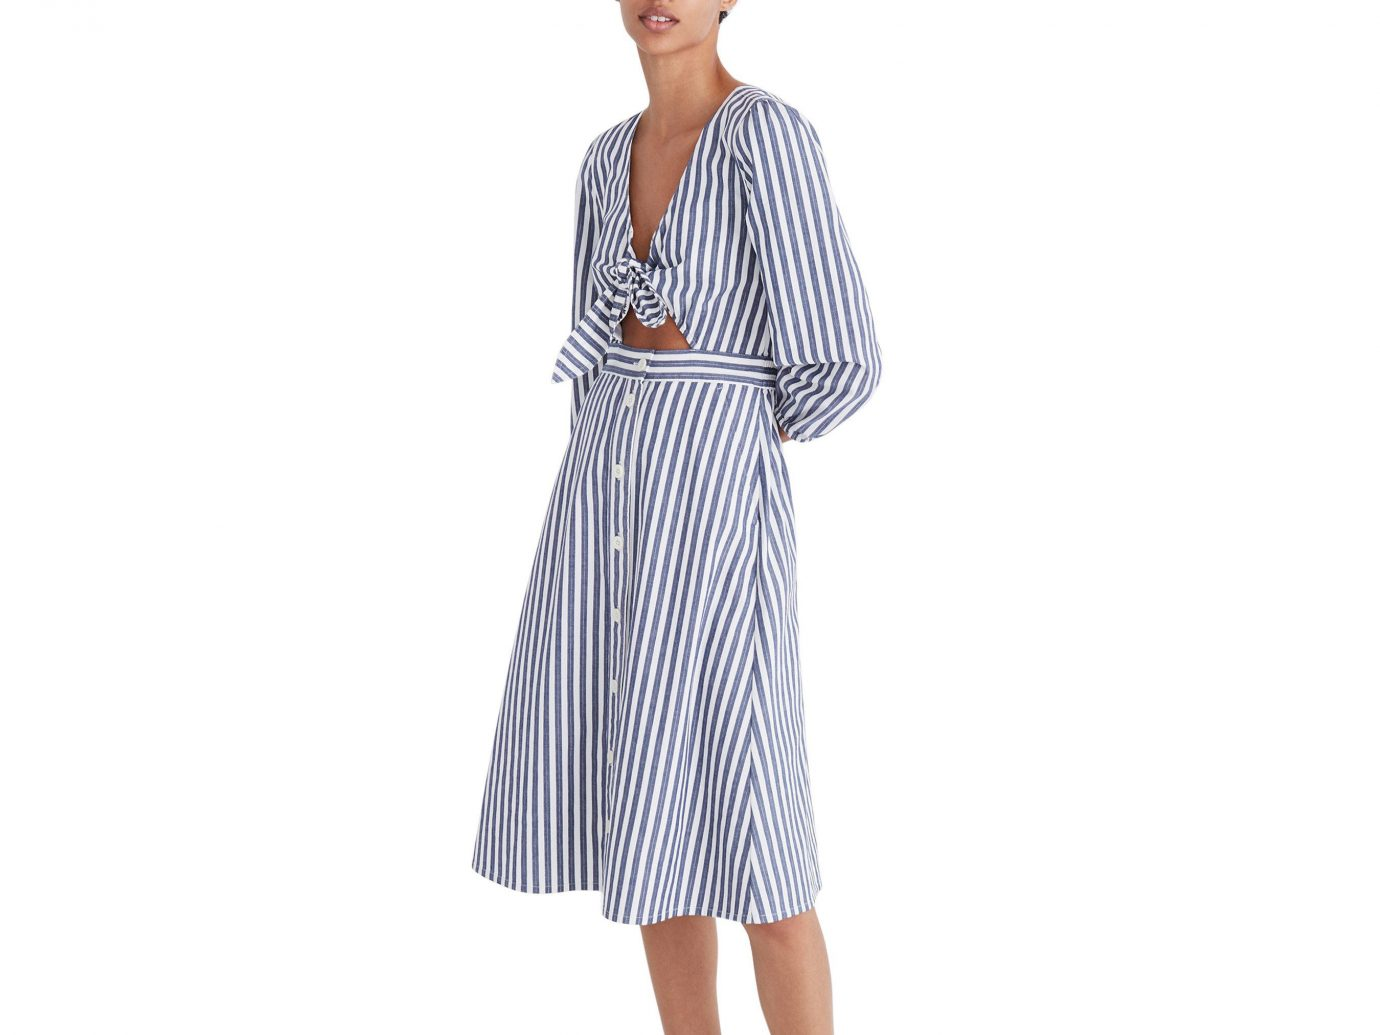 Style + Design Travel Shop clothing day dress dress nightwear robe outerwear sleeve costume neck pattern